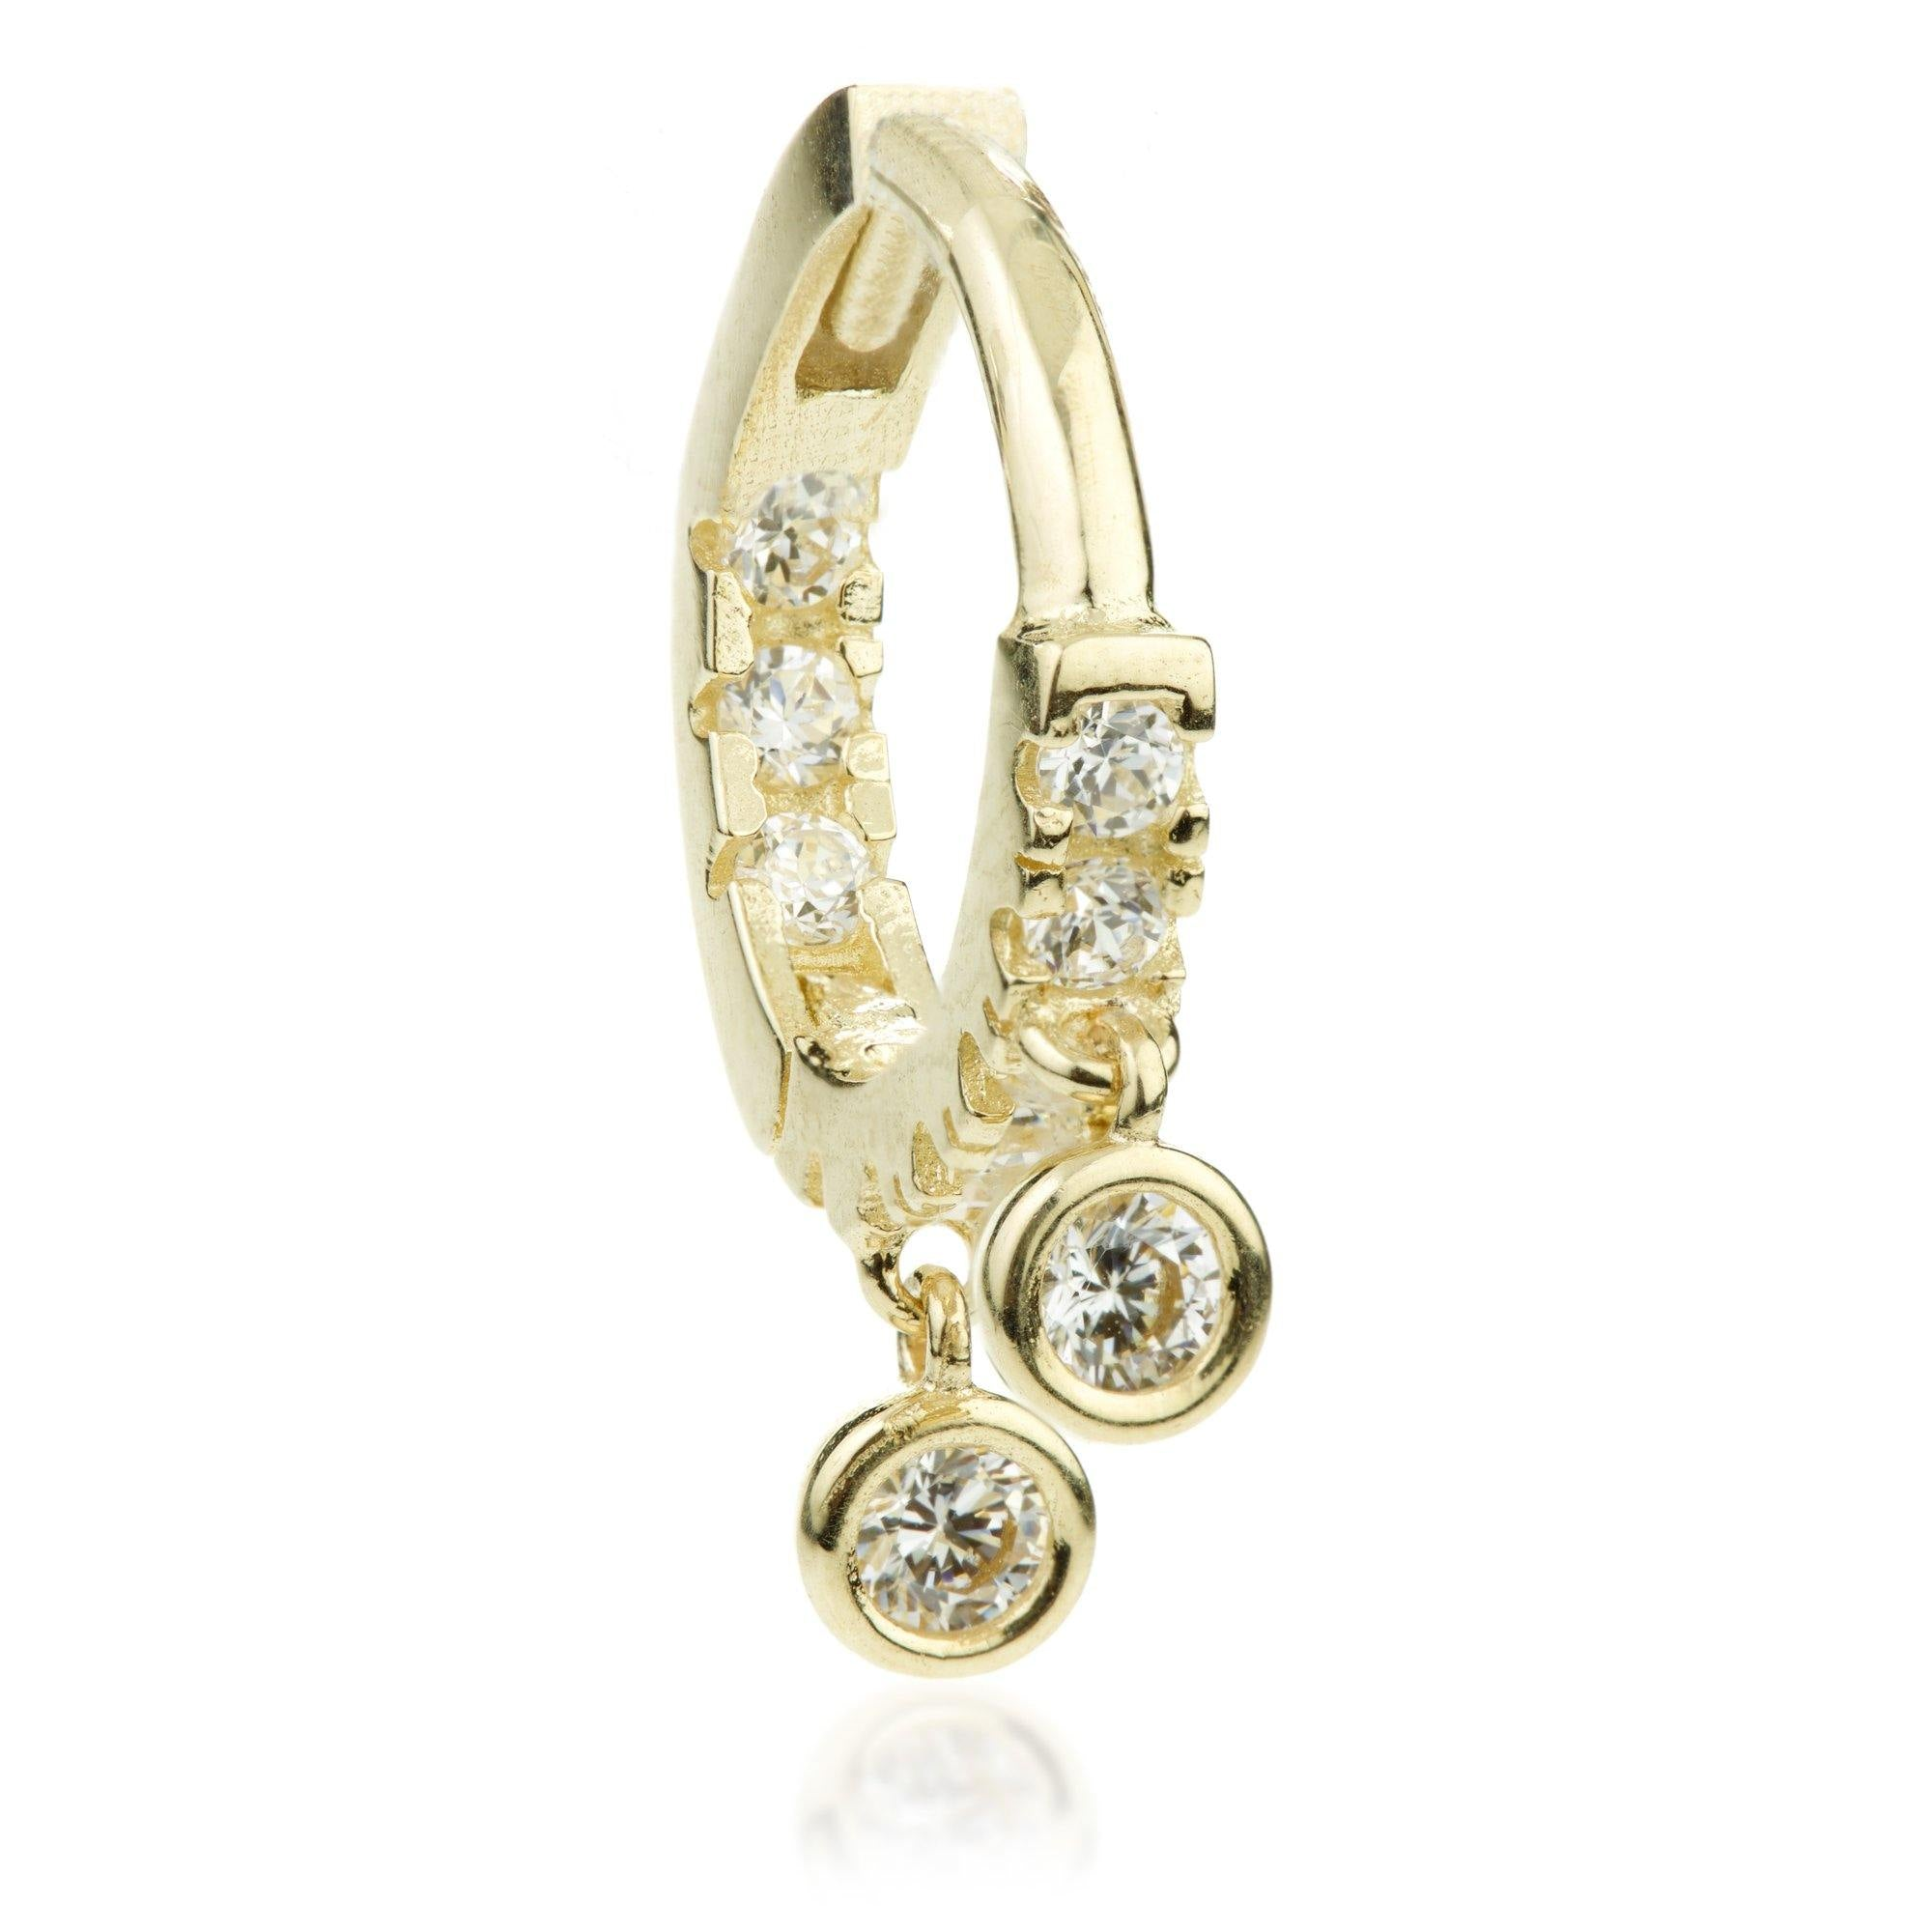 9ct Gold Crystal Double Charm Hoop Earring